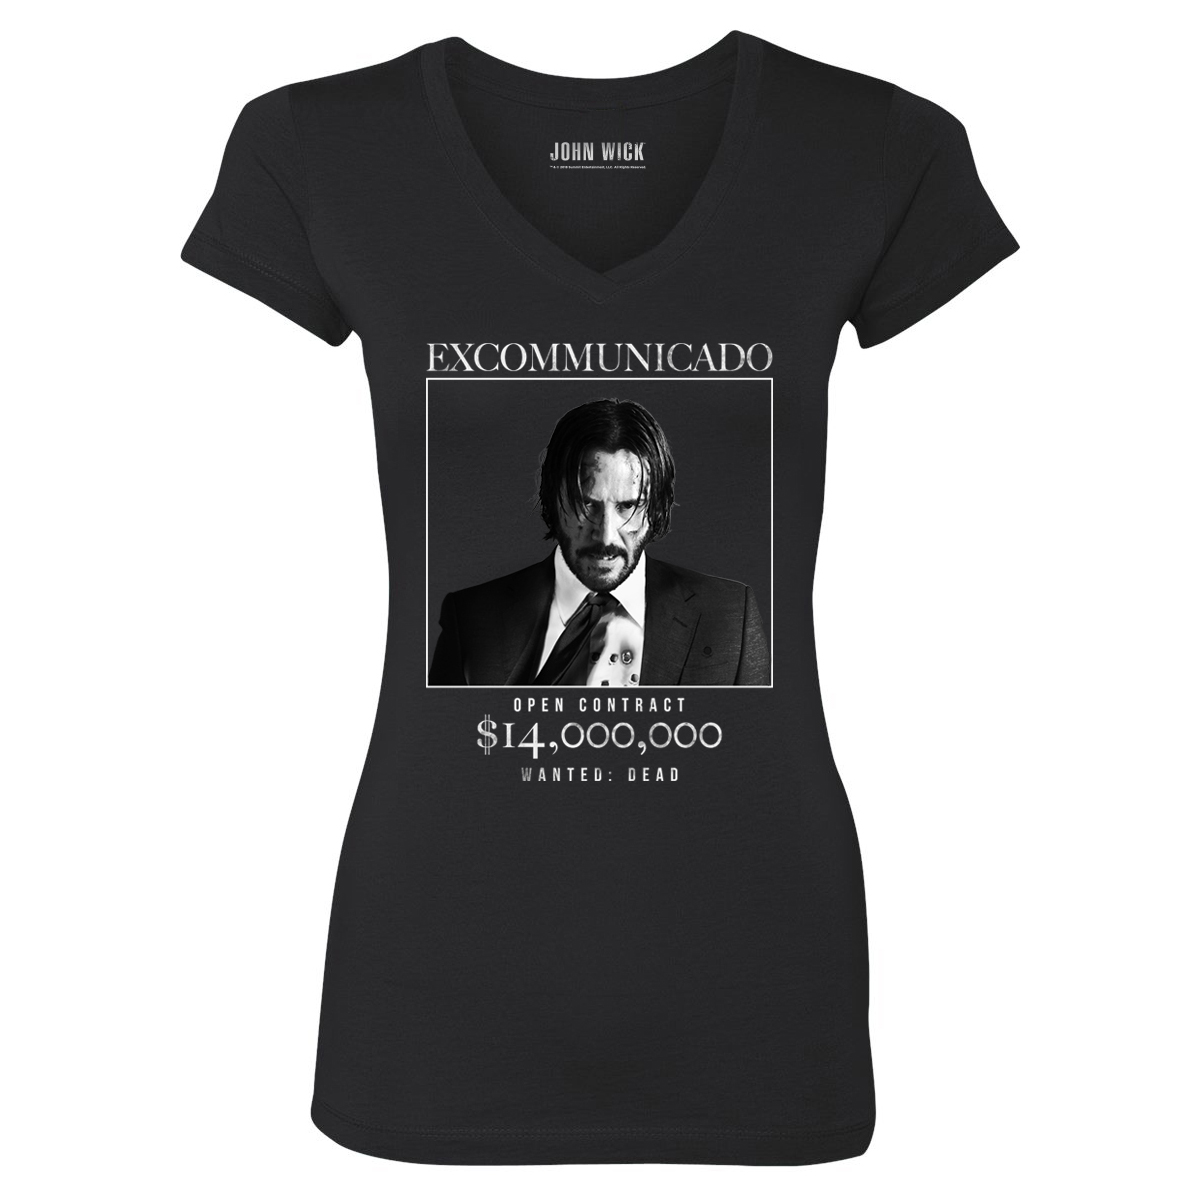 John Wick Excommunicado Women's V-Neck T-Shirt